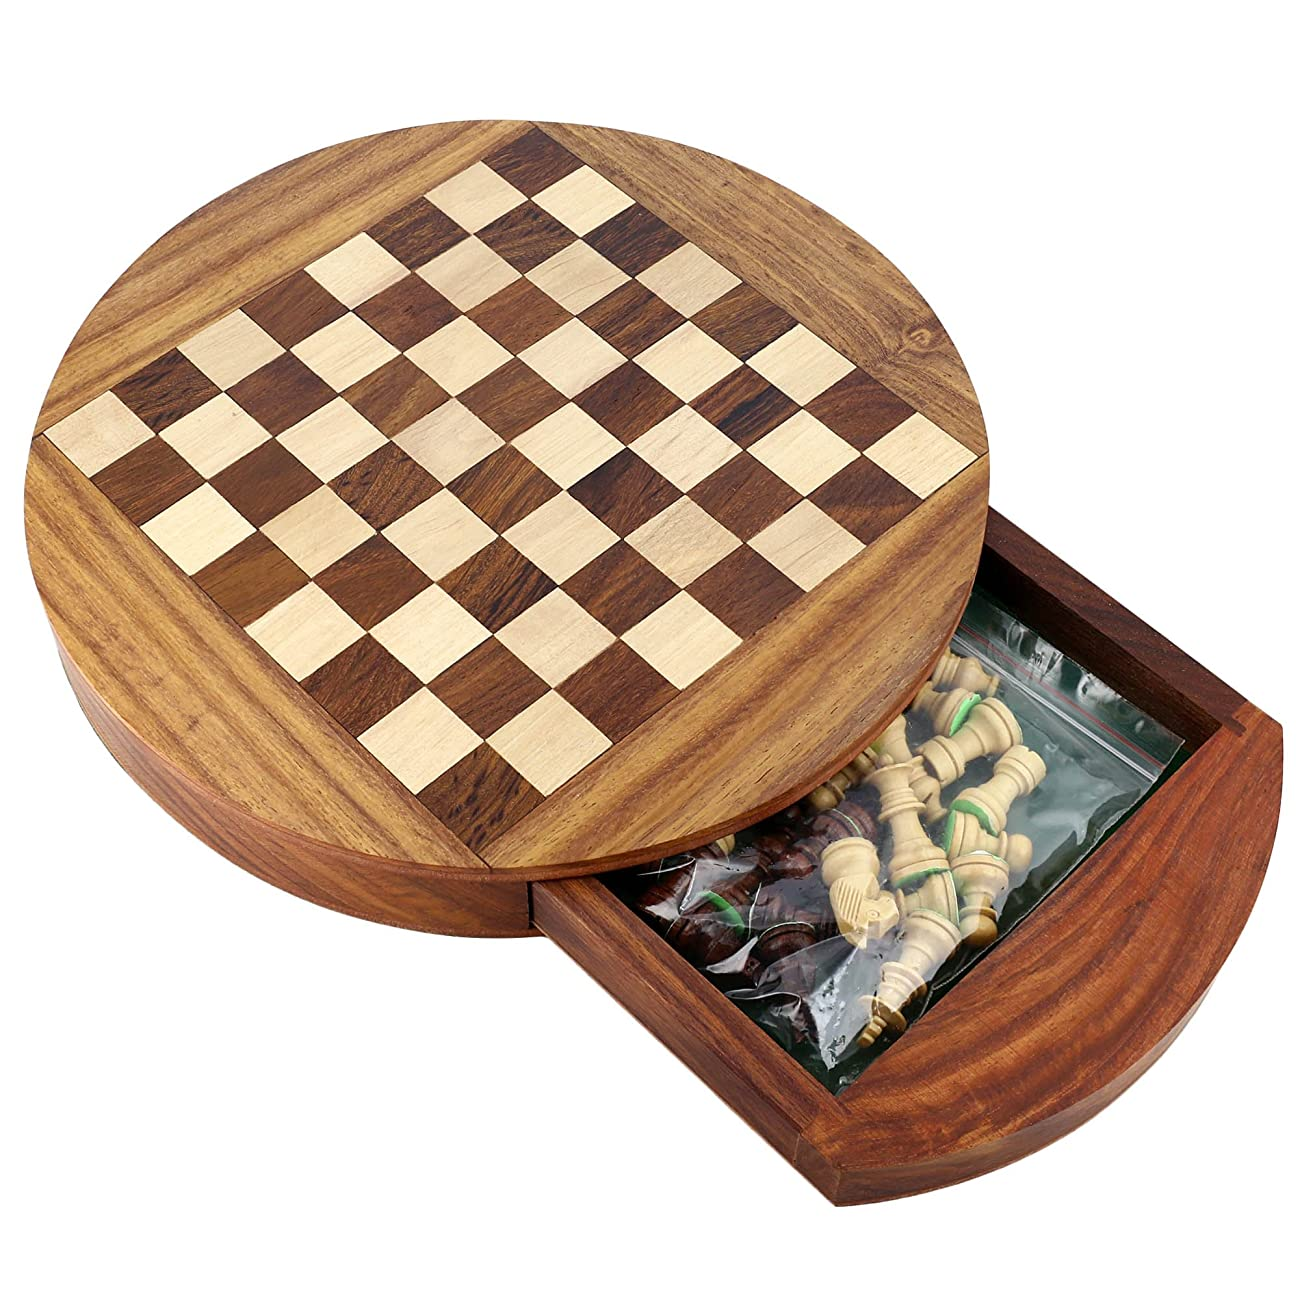 Unique Compact Box Magnetic Round Wooden Chess Board And Pieces Set Gift For Kids Adults 6